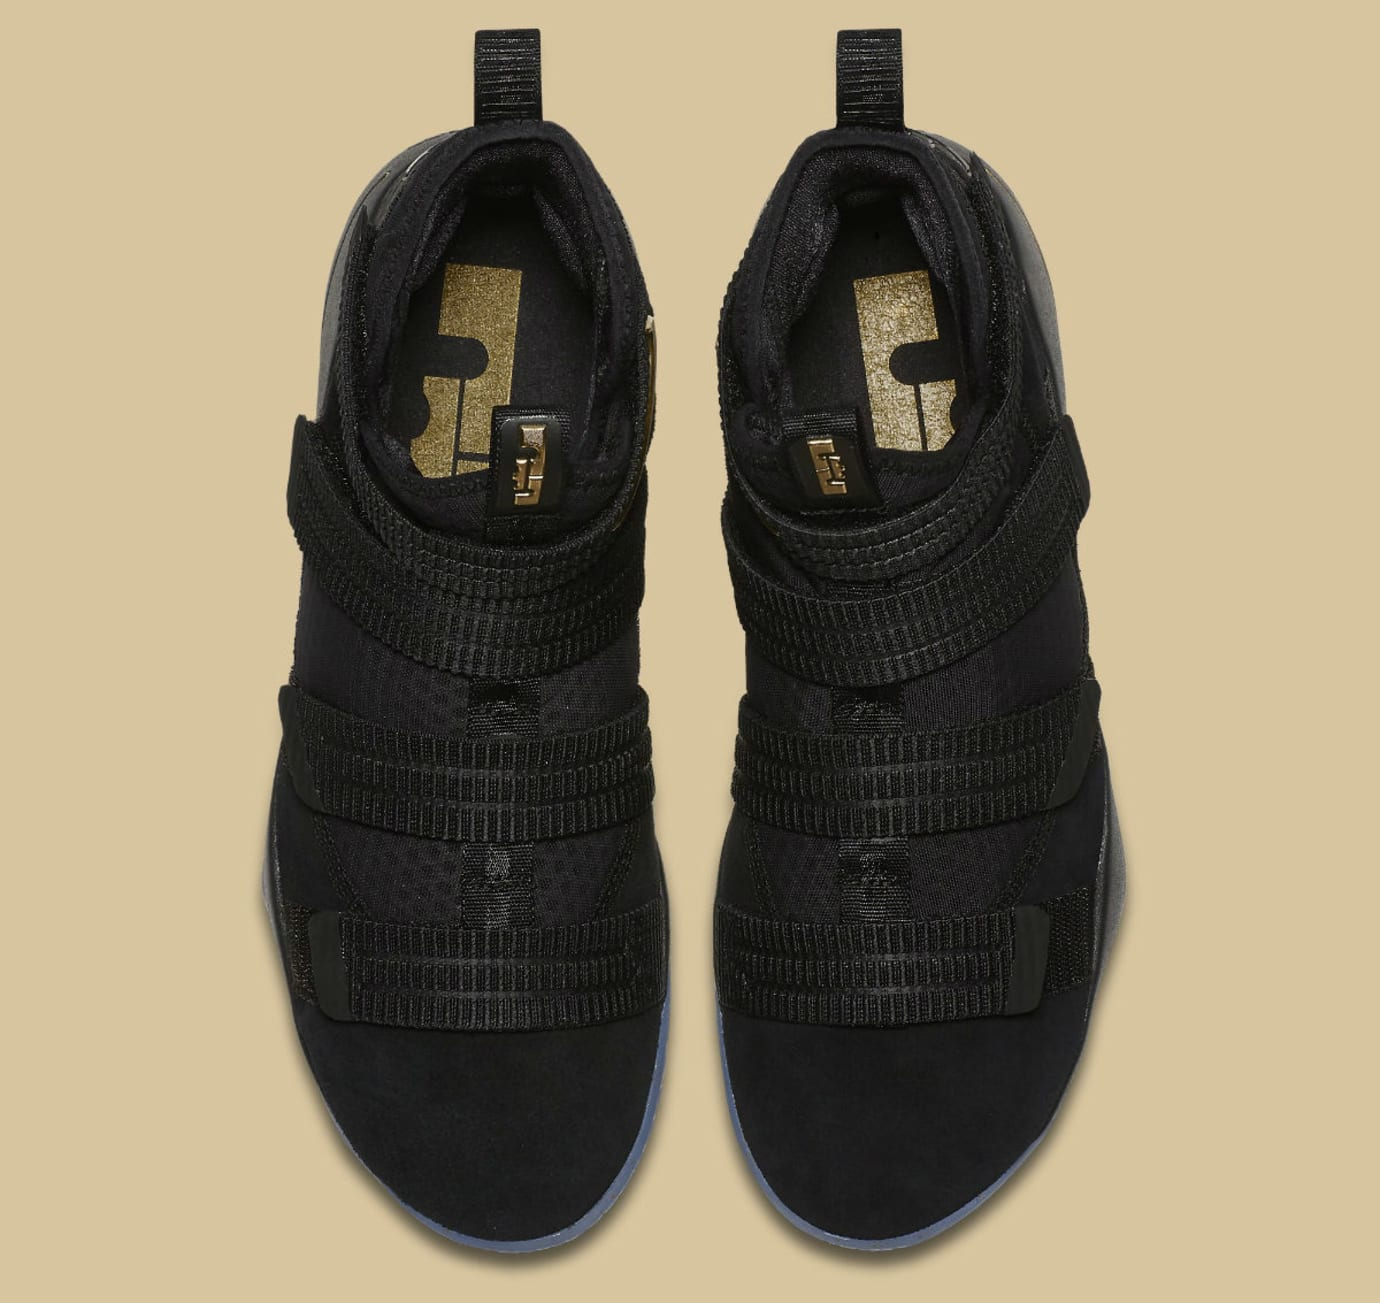 Nike LeBron Soldier 11 SFG Black/Gold Finals Release Date Top